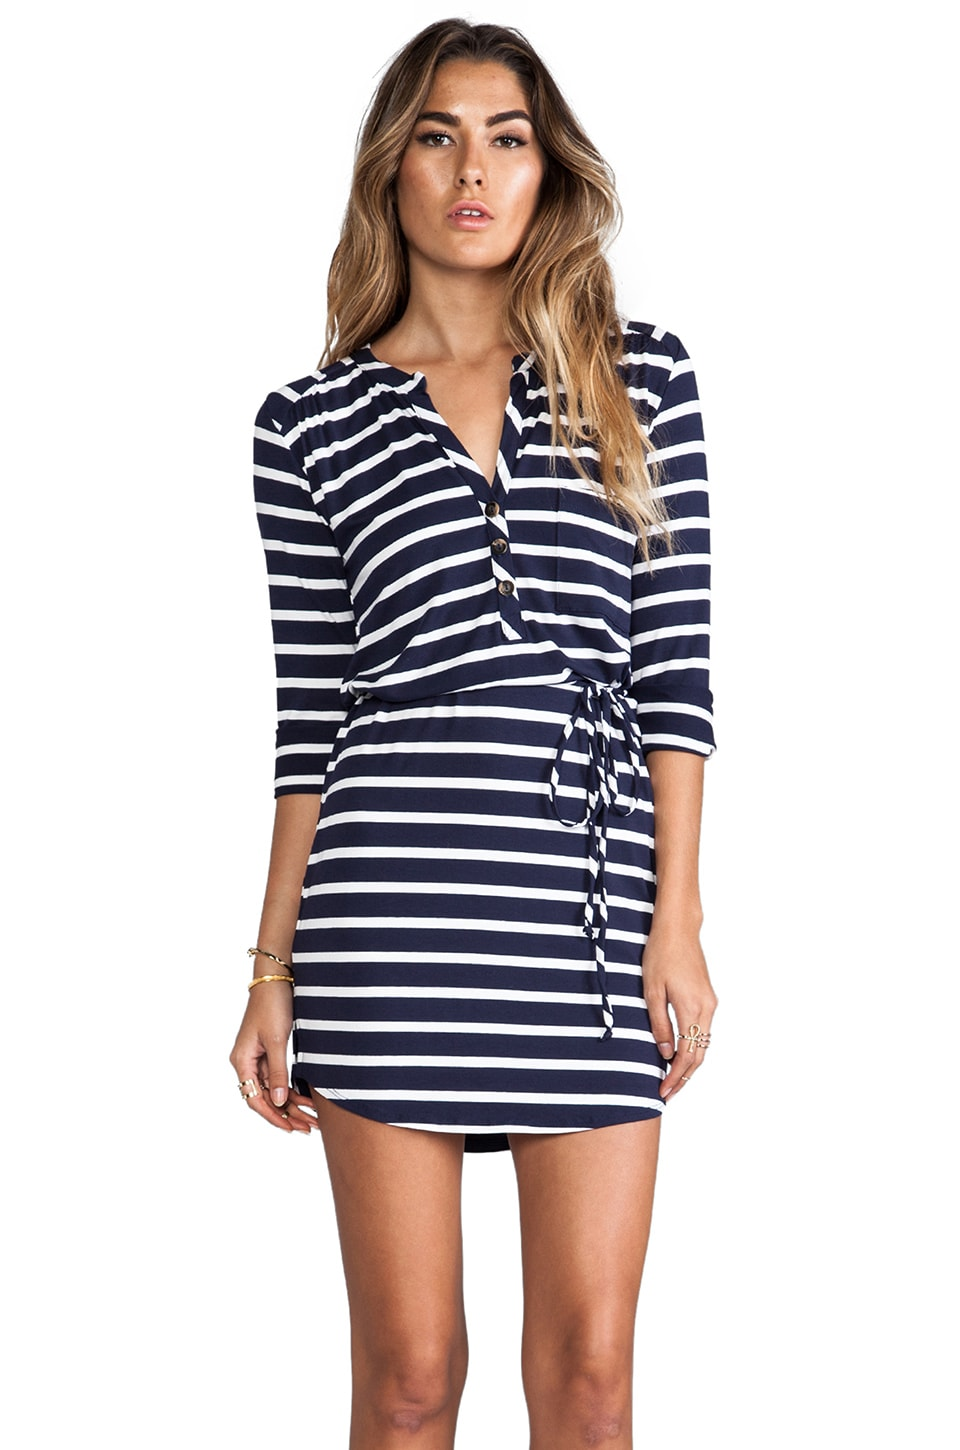 LA Made Classic Stripe Henley Dress in Navy & White